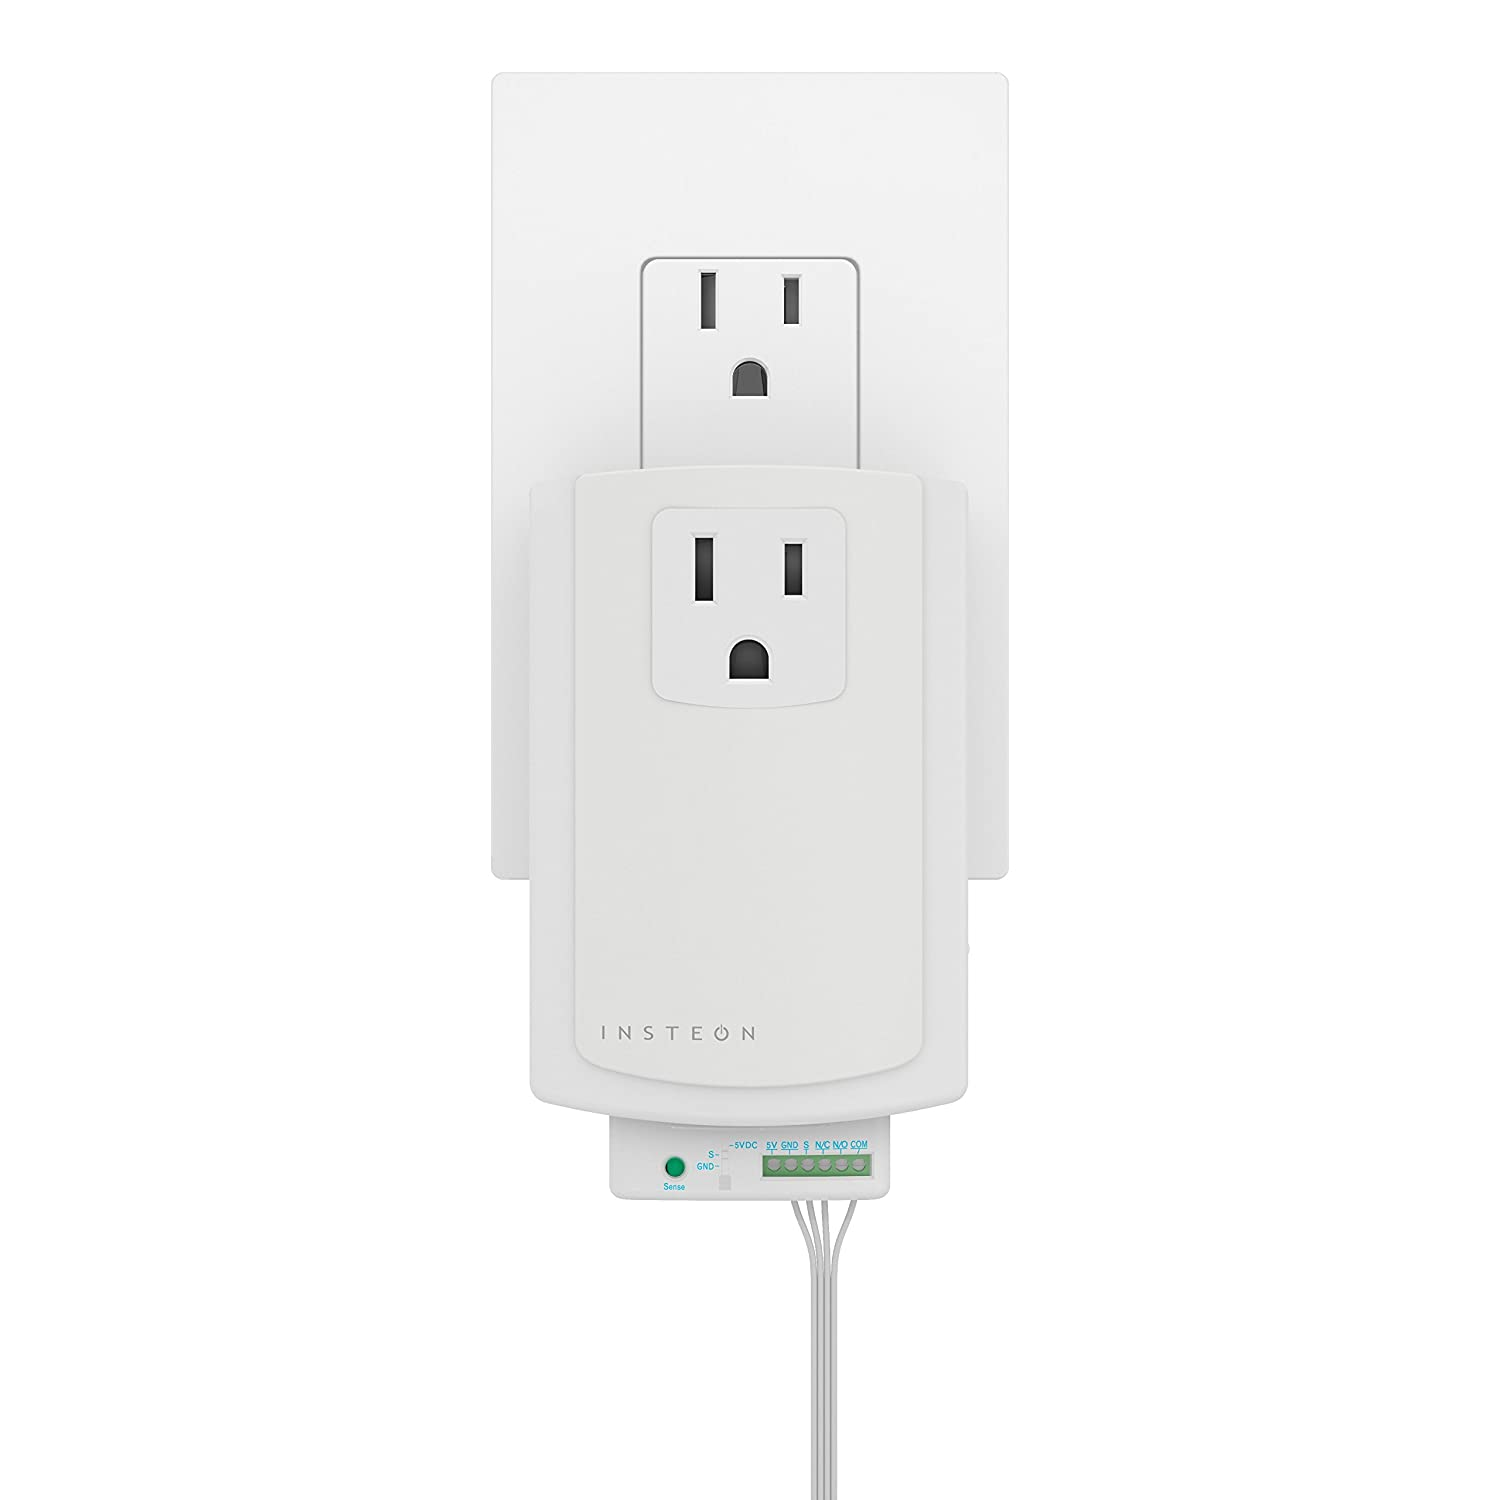 Insteon 2450 io linc low voltage contact closure interface insteon 2450 io linc low voltage contact closure interface connected home modules amazon rubansaba